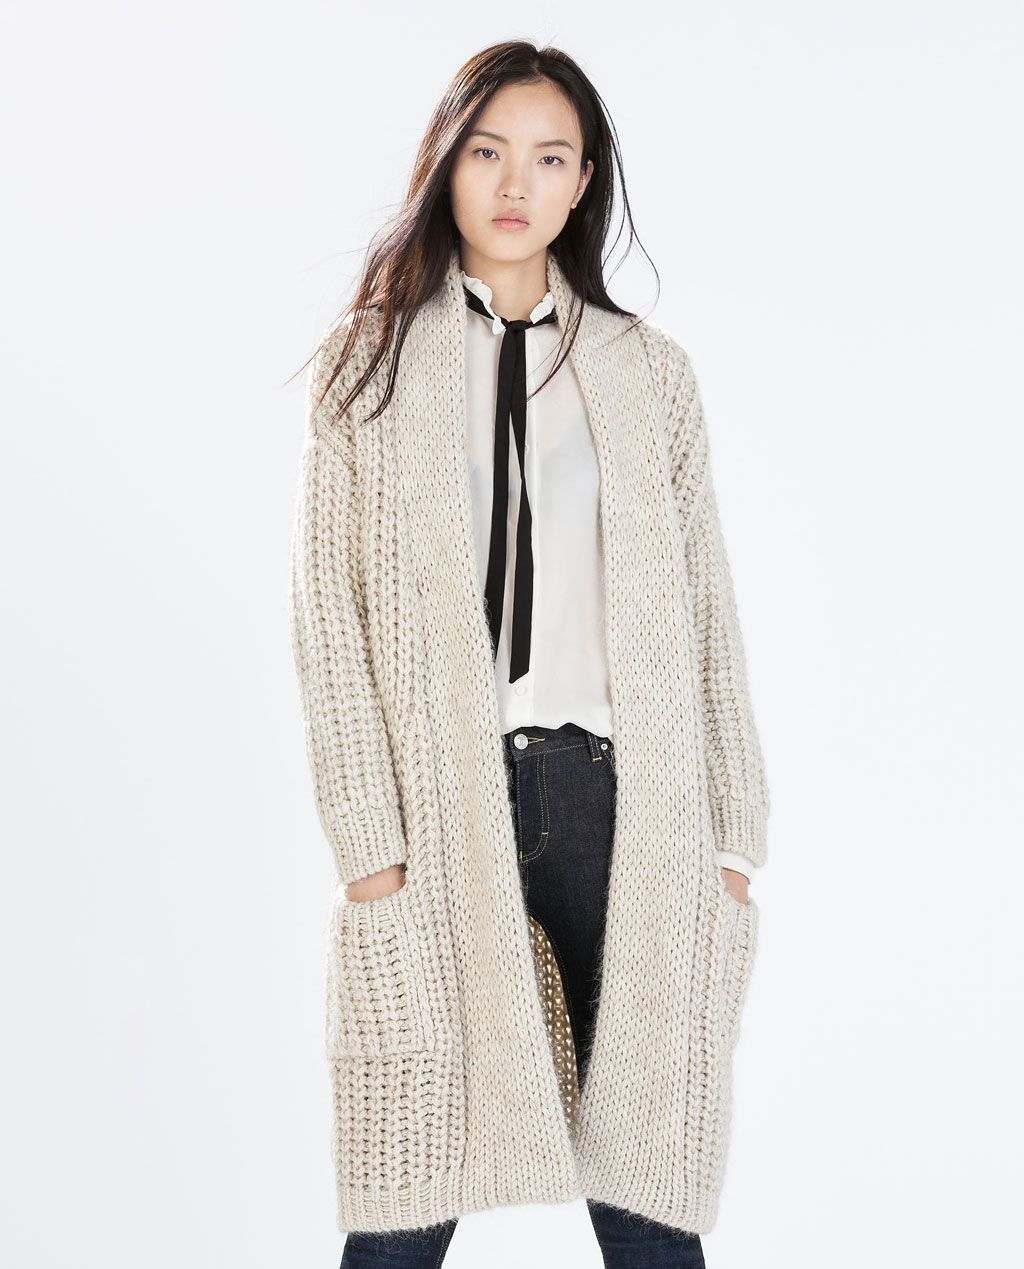 Long Knit Coat With Pockets Jackets For Women Fall